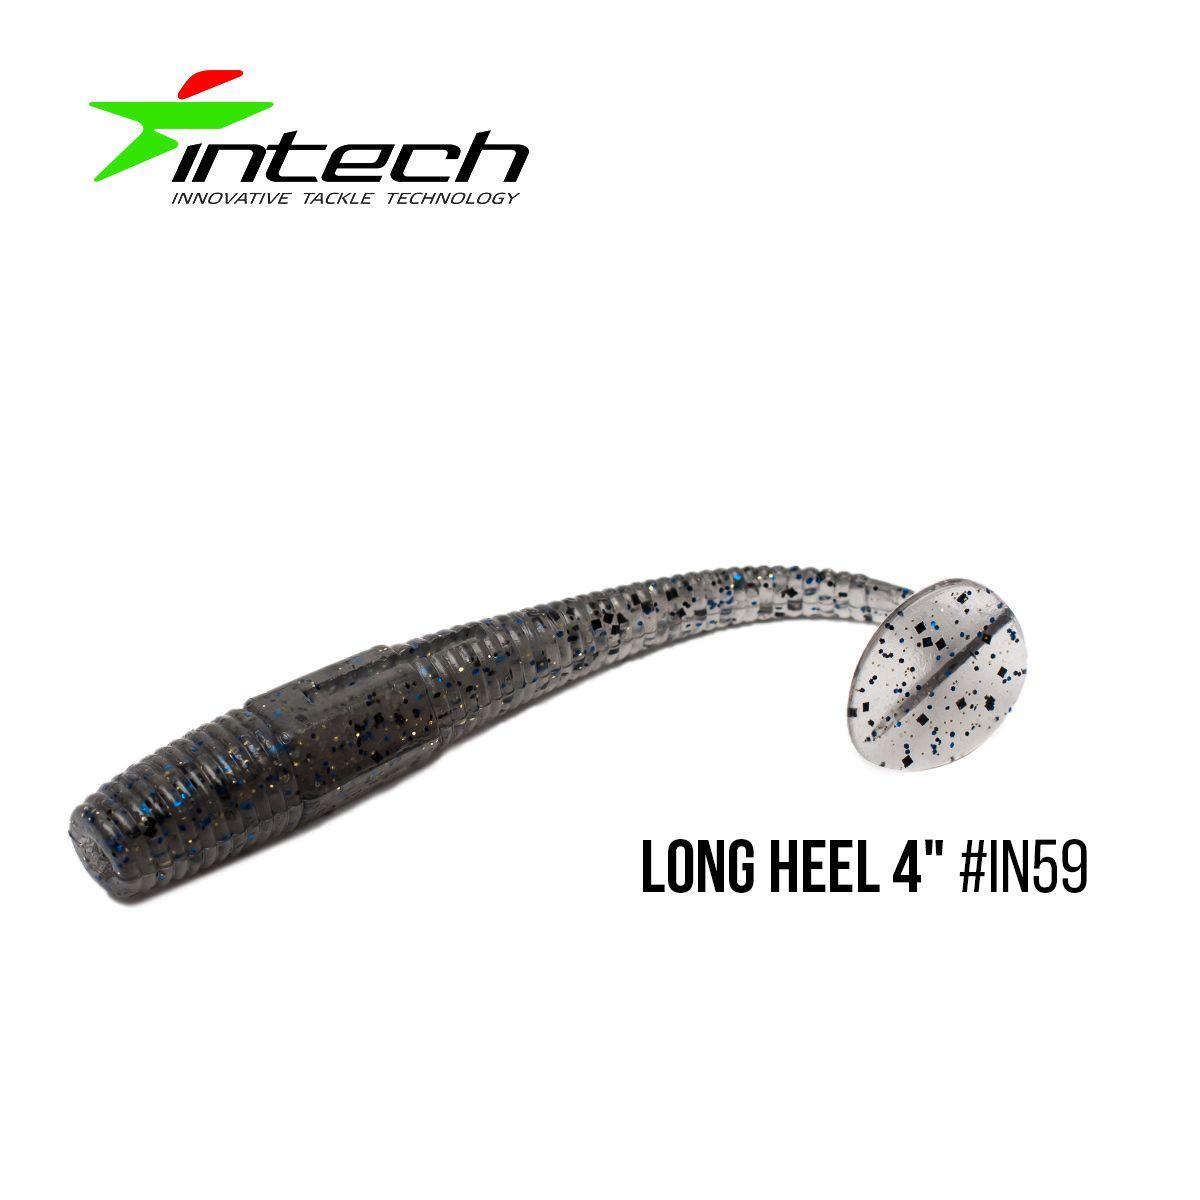 """.Приманка Intech Long Heel 4""(6 шт) (IN59)"